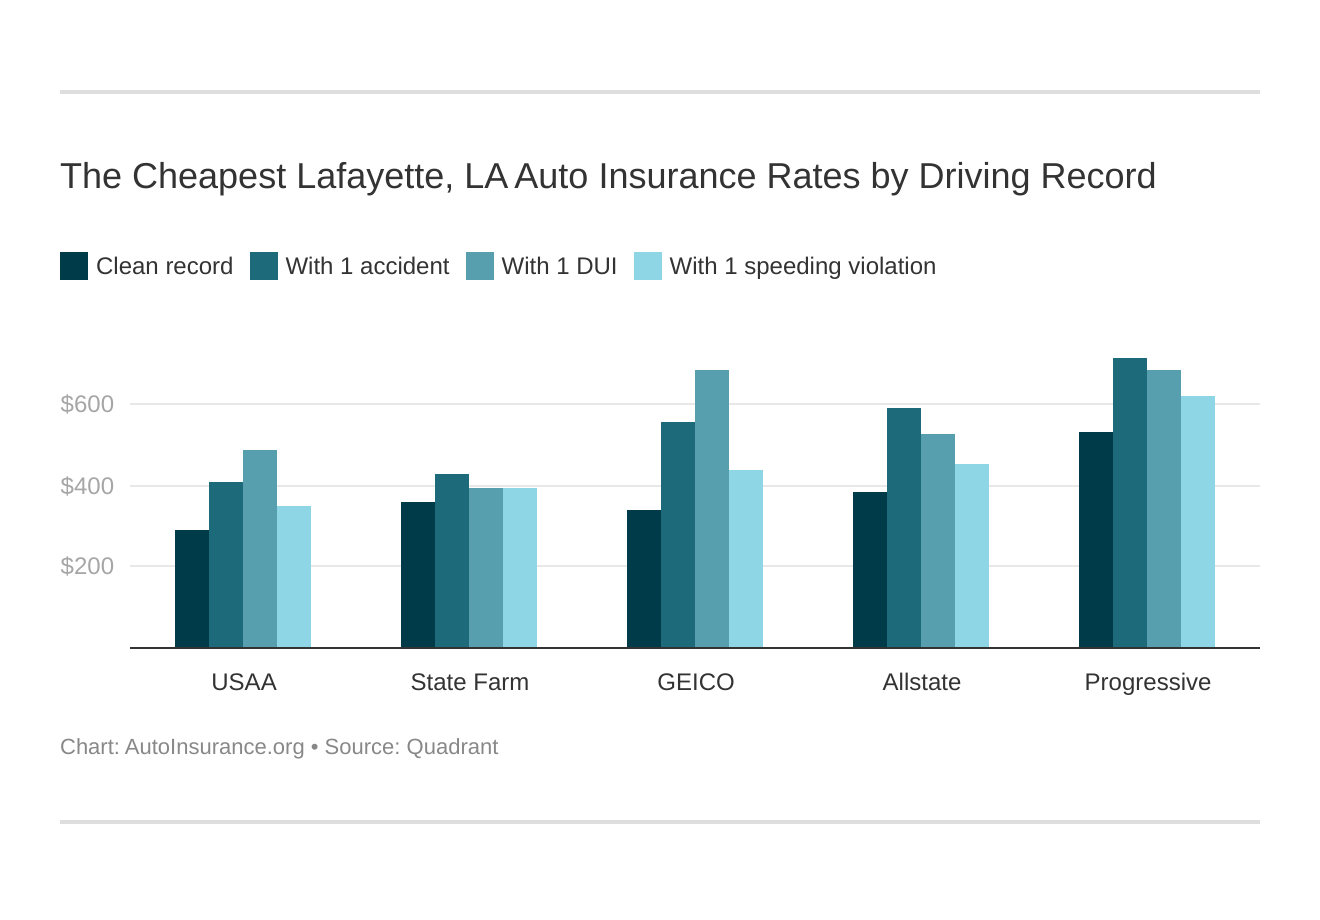 The Cheapest Lafayette, LA Auto Insurance Rates by Driving Record